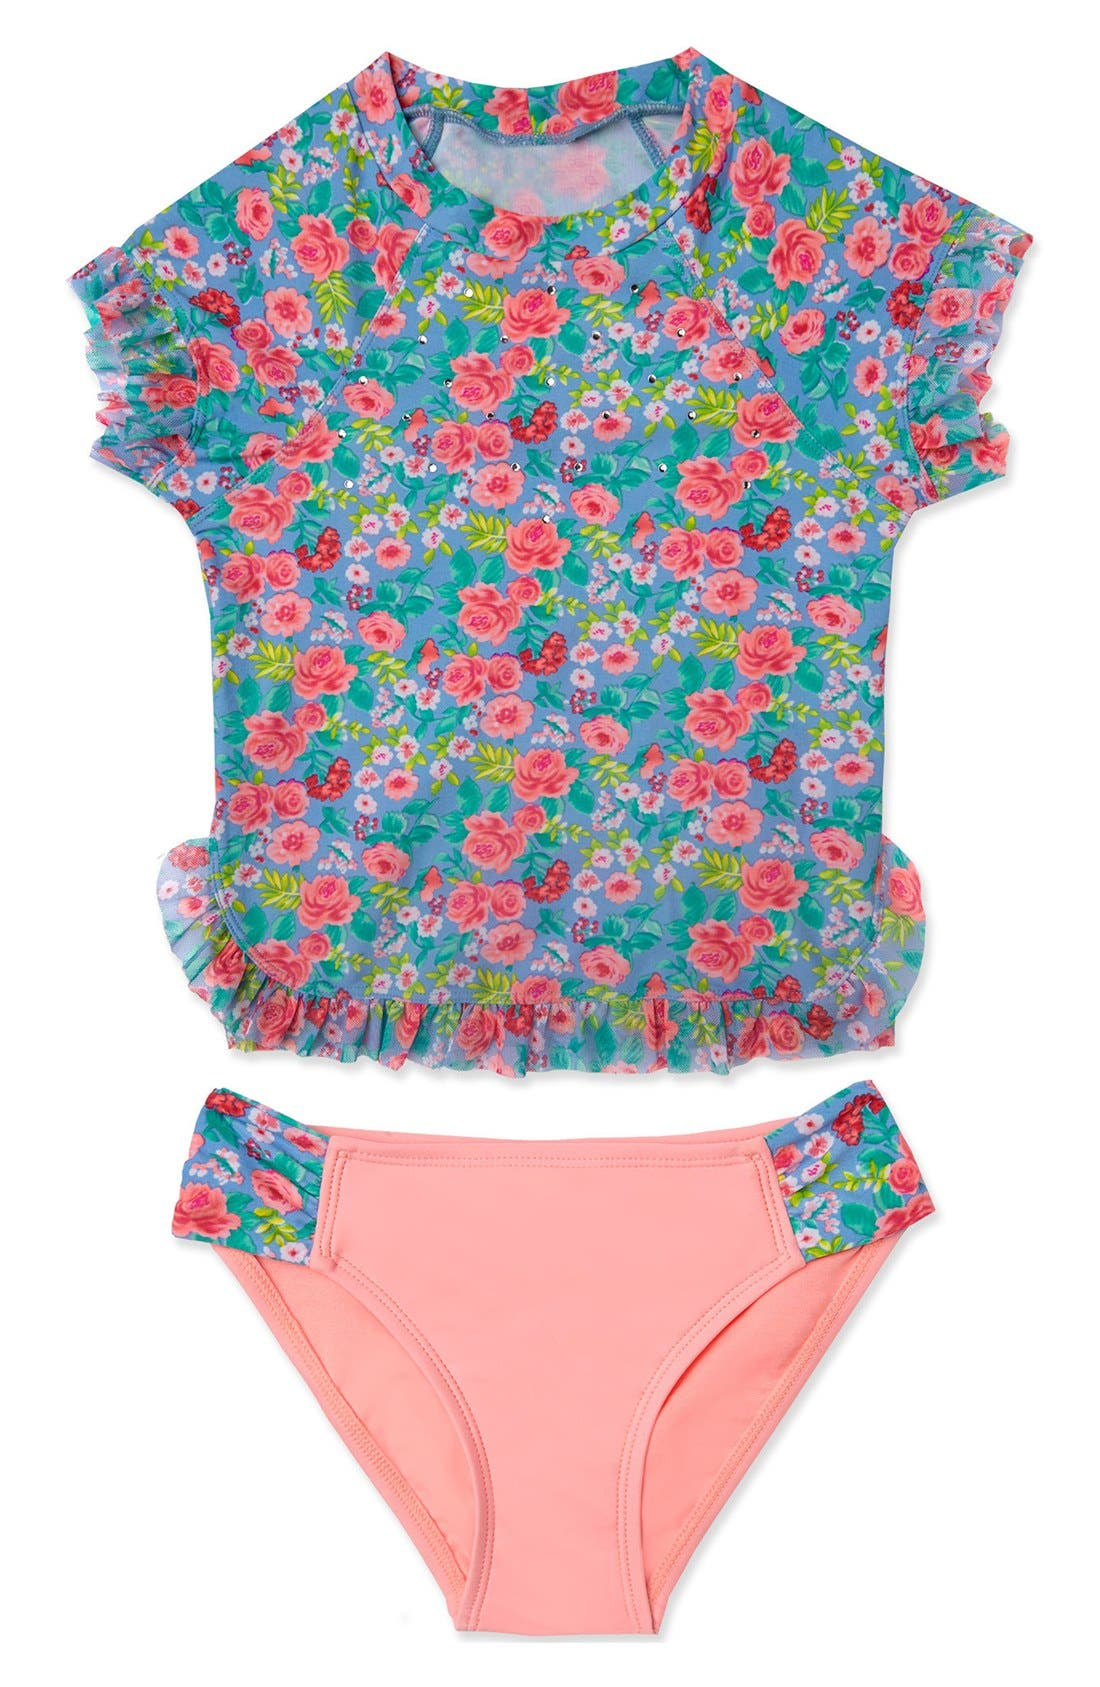 Hula Star 'Rose Tango' Two-Piece Rashguard Swimsuit (Toddler Girls & Little Girls)